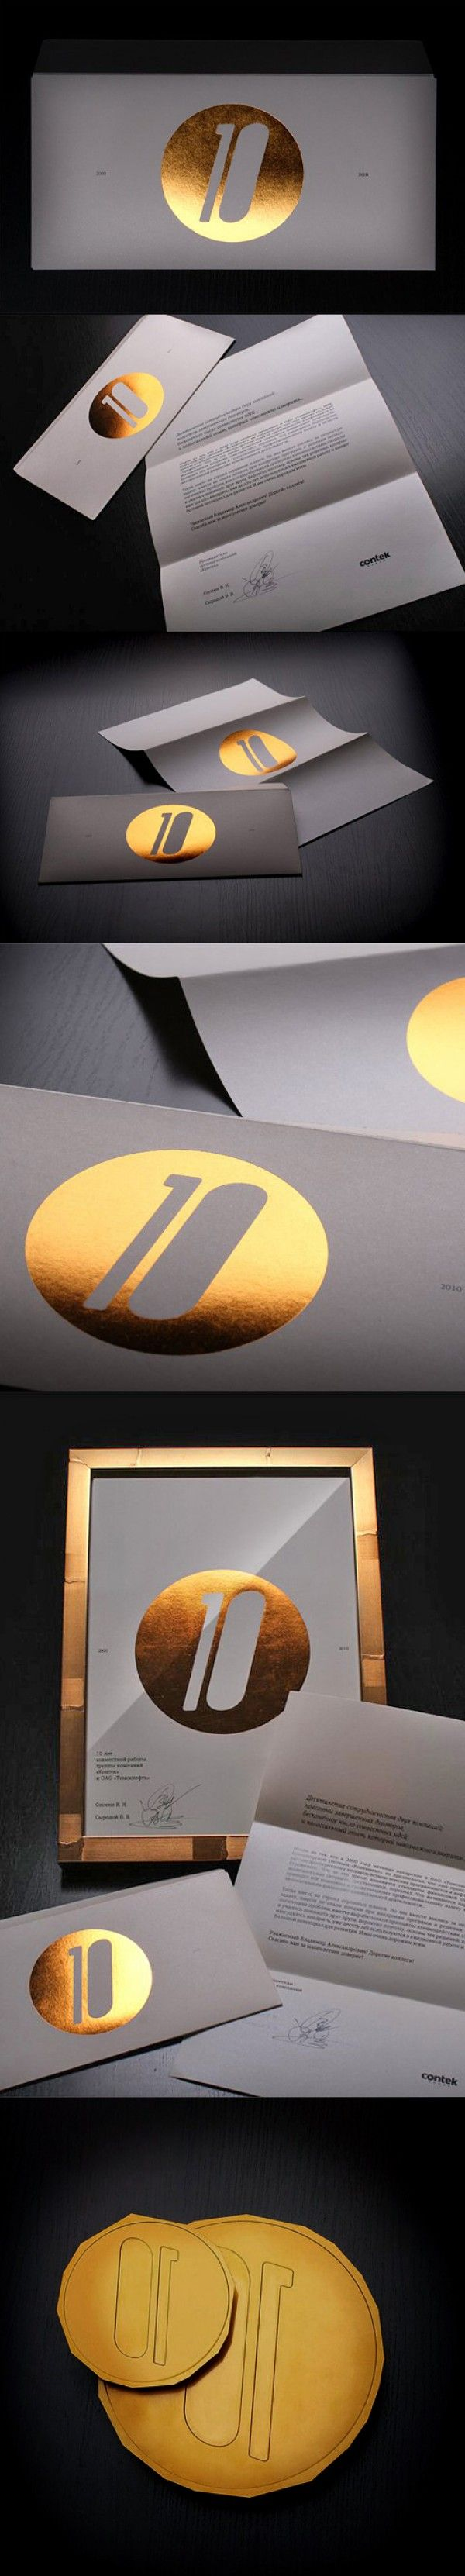 10 Identity - Metallic Ink or Gold Foil? (Awesome) -FromUpNorth: 10 Identity, 10 Graphics Design, Black Gold Graphics Design, Gold Foil, Inspiration Prints, Gold Metals Boxes, Metals Boxes Gold, Design Studios, Branding Identity Design